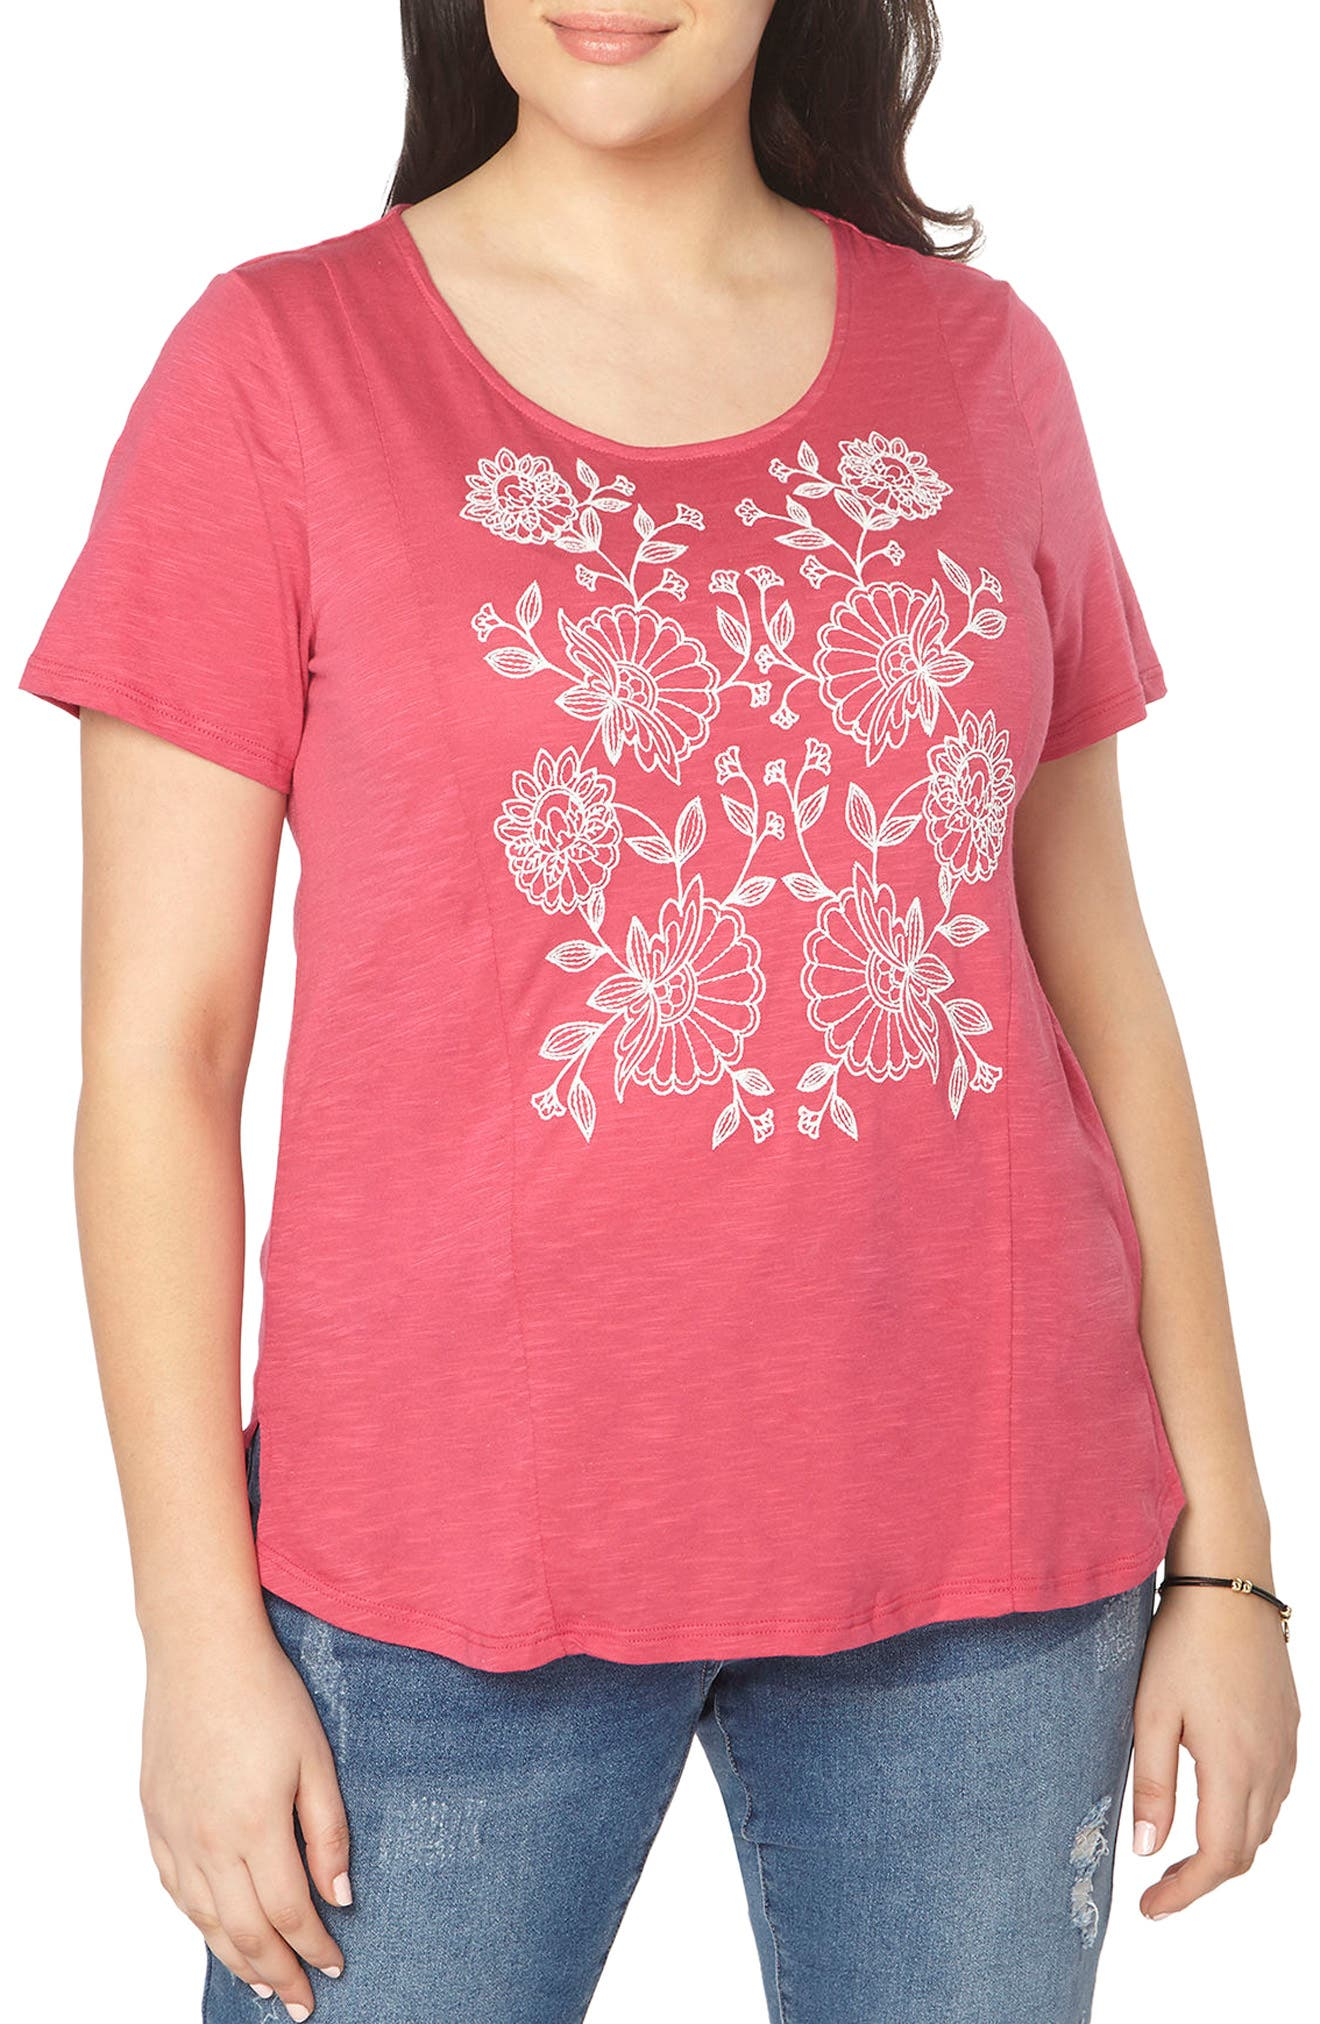 Evans Embroidered Tee (Plus Size)